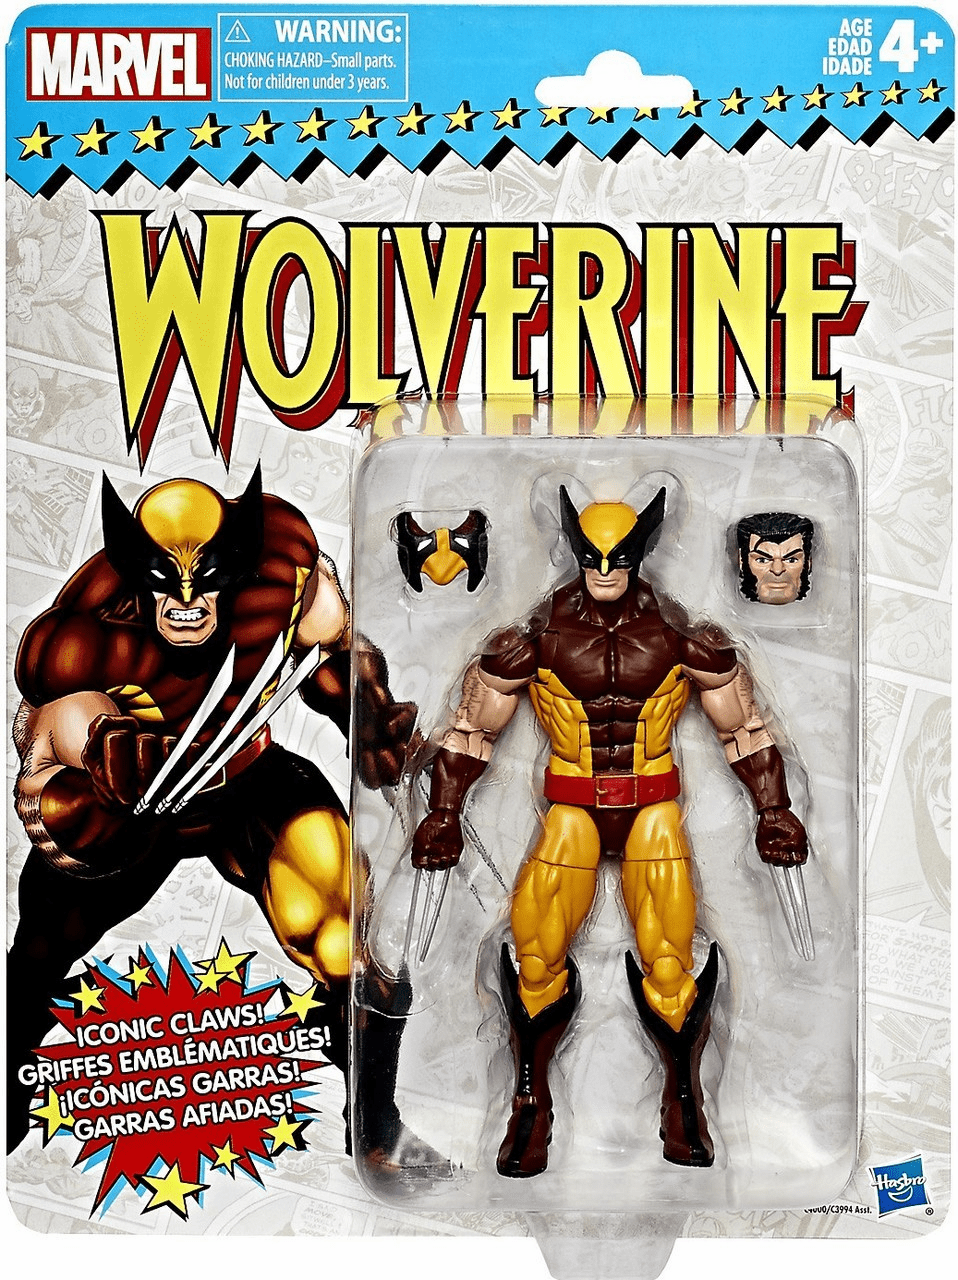 Marvel Legends Retro Series Action Figures